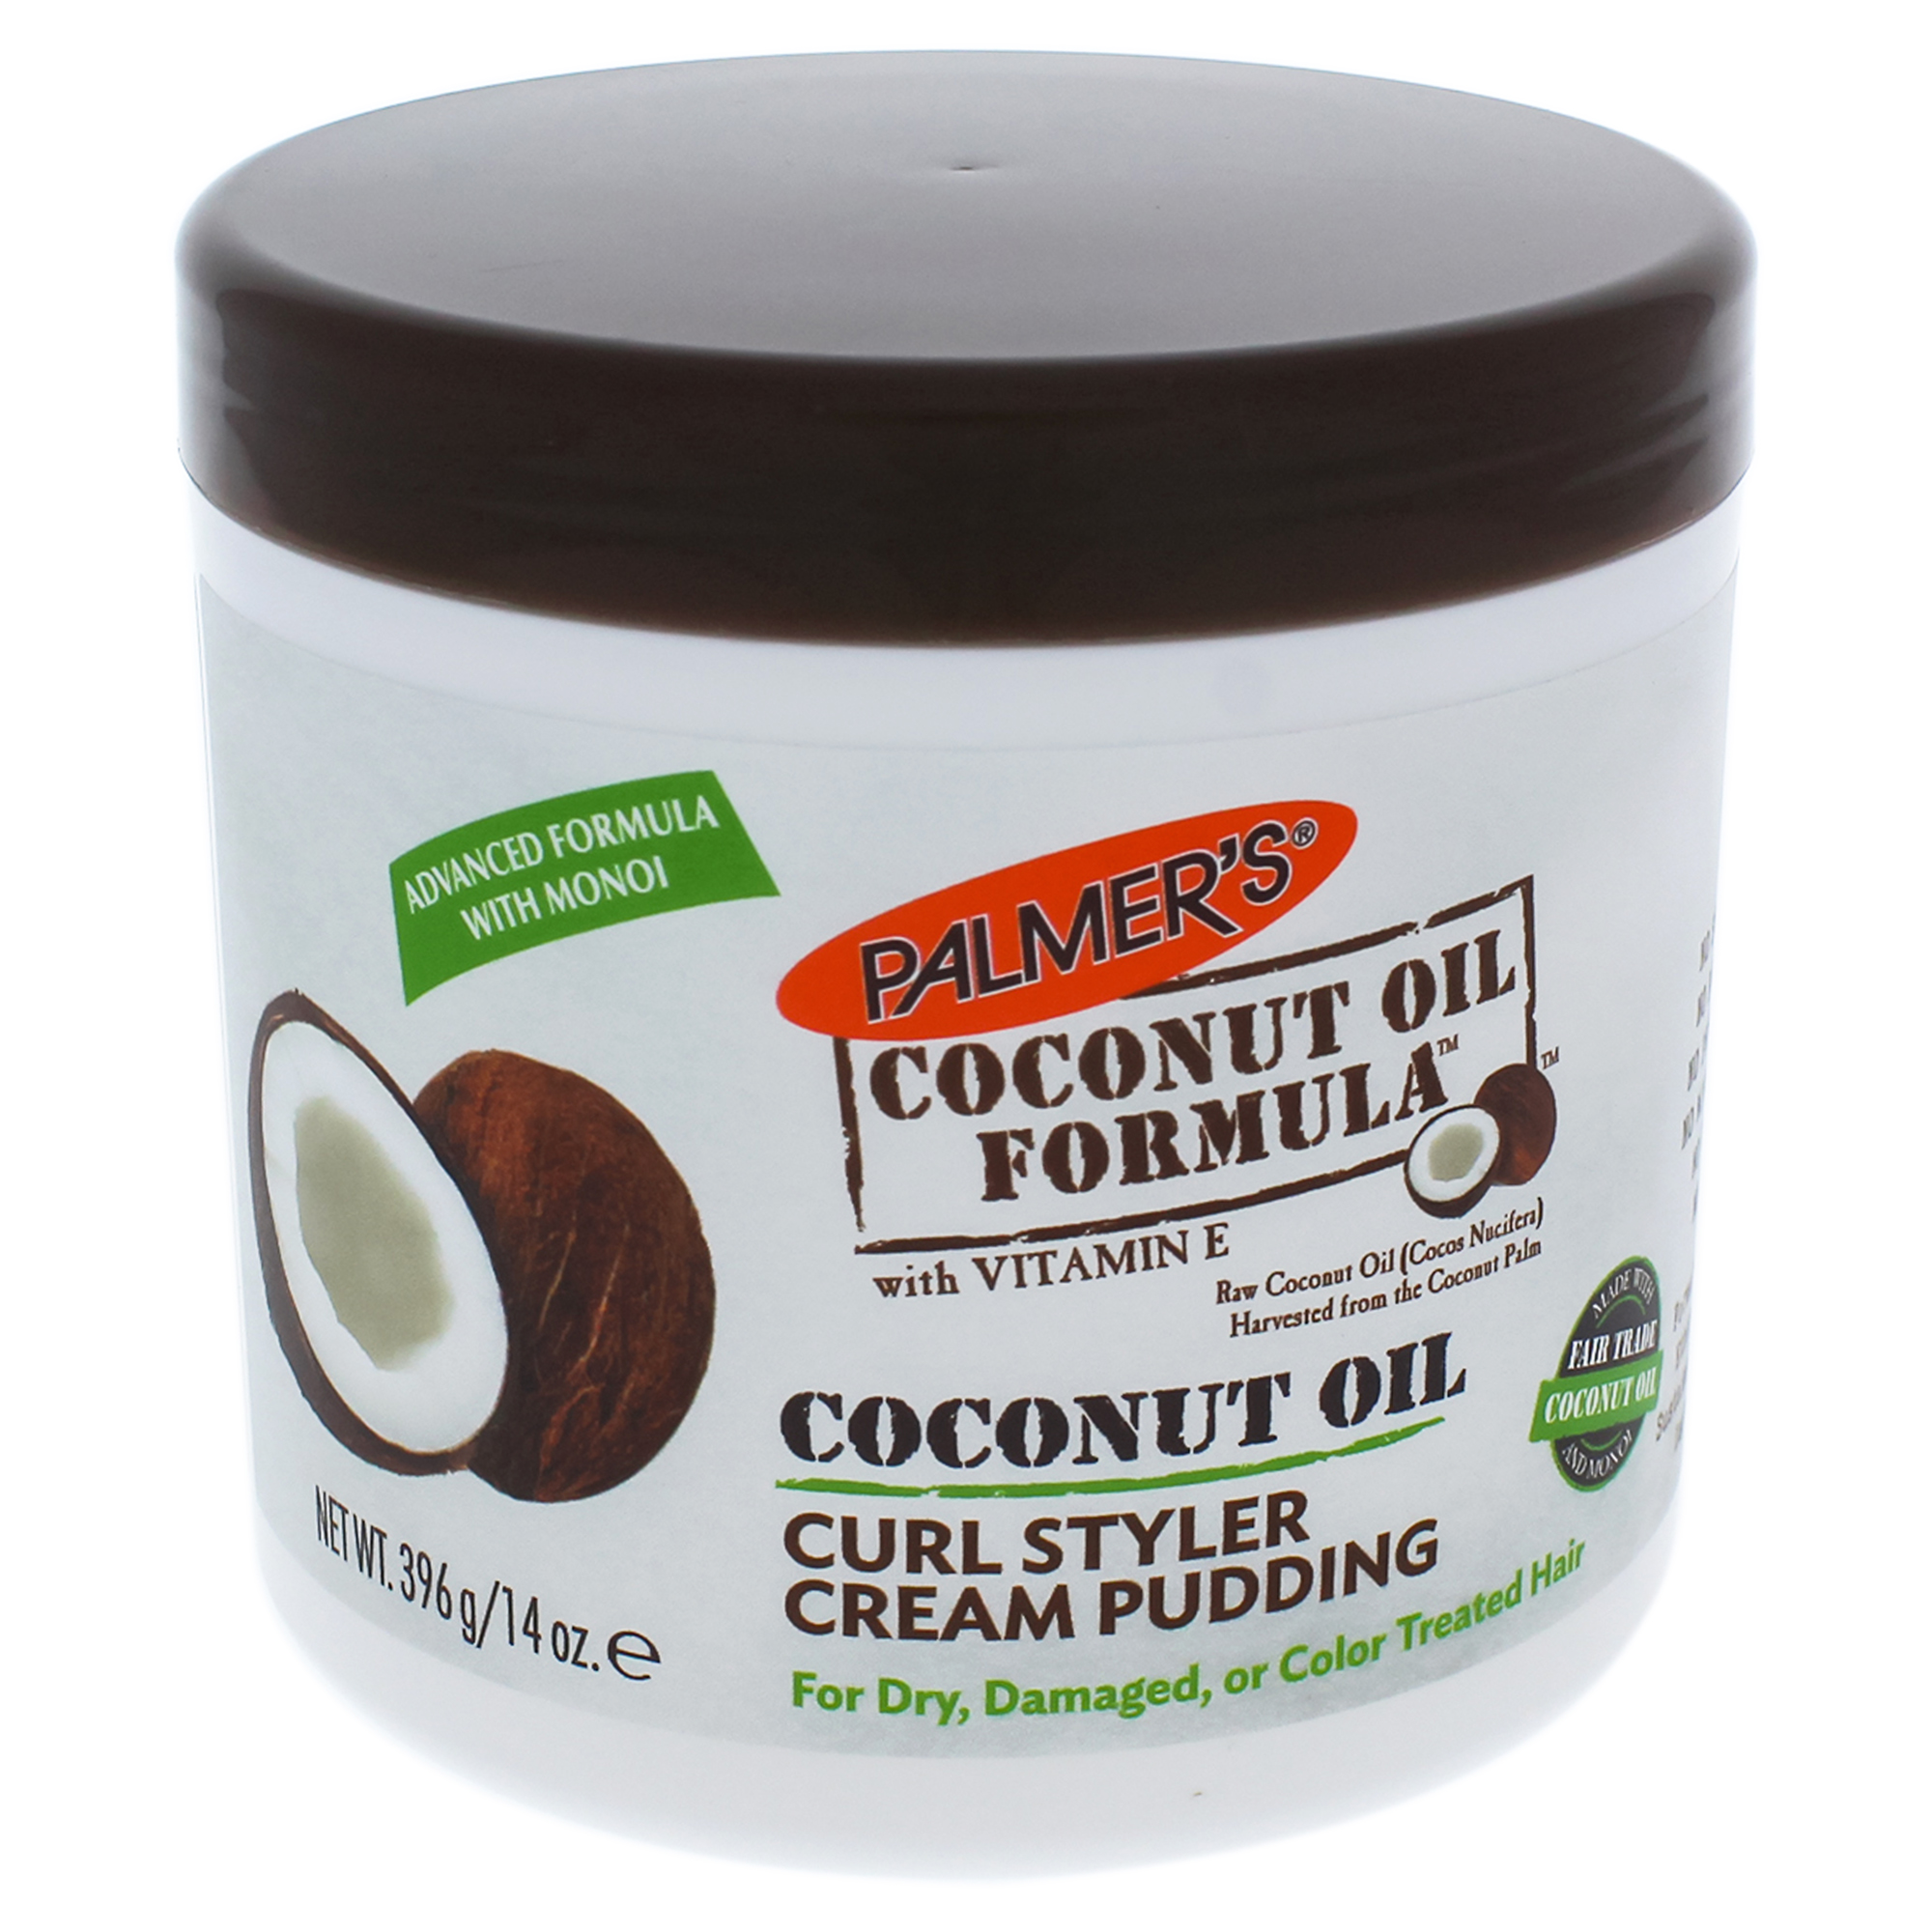 Coconut Oil Curl Styler Cream Pudding by Palmers for Unisex - 14 oz Cream